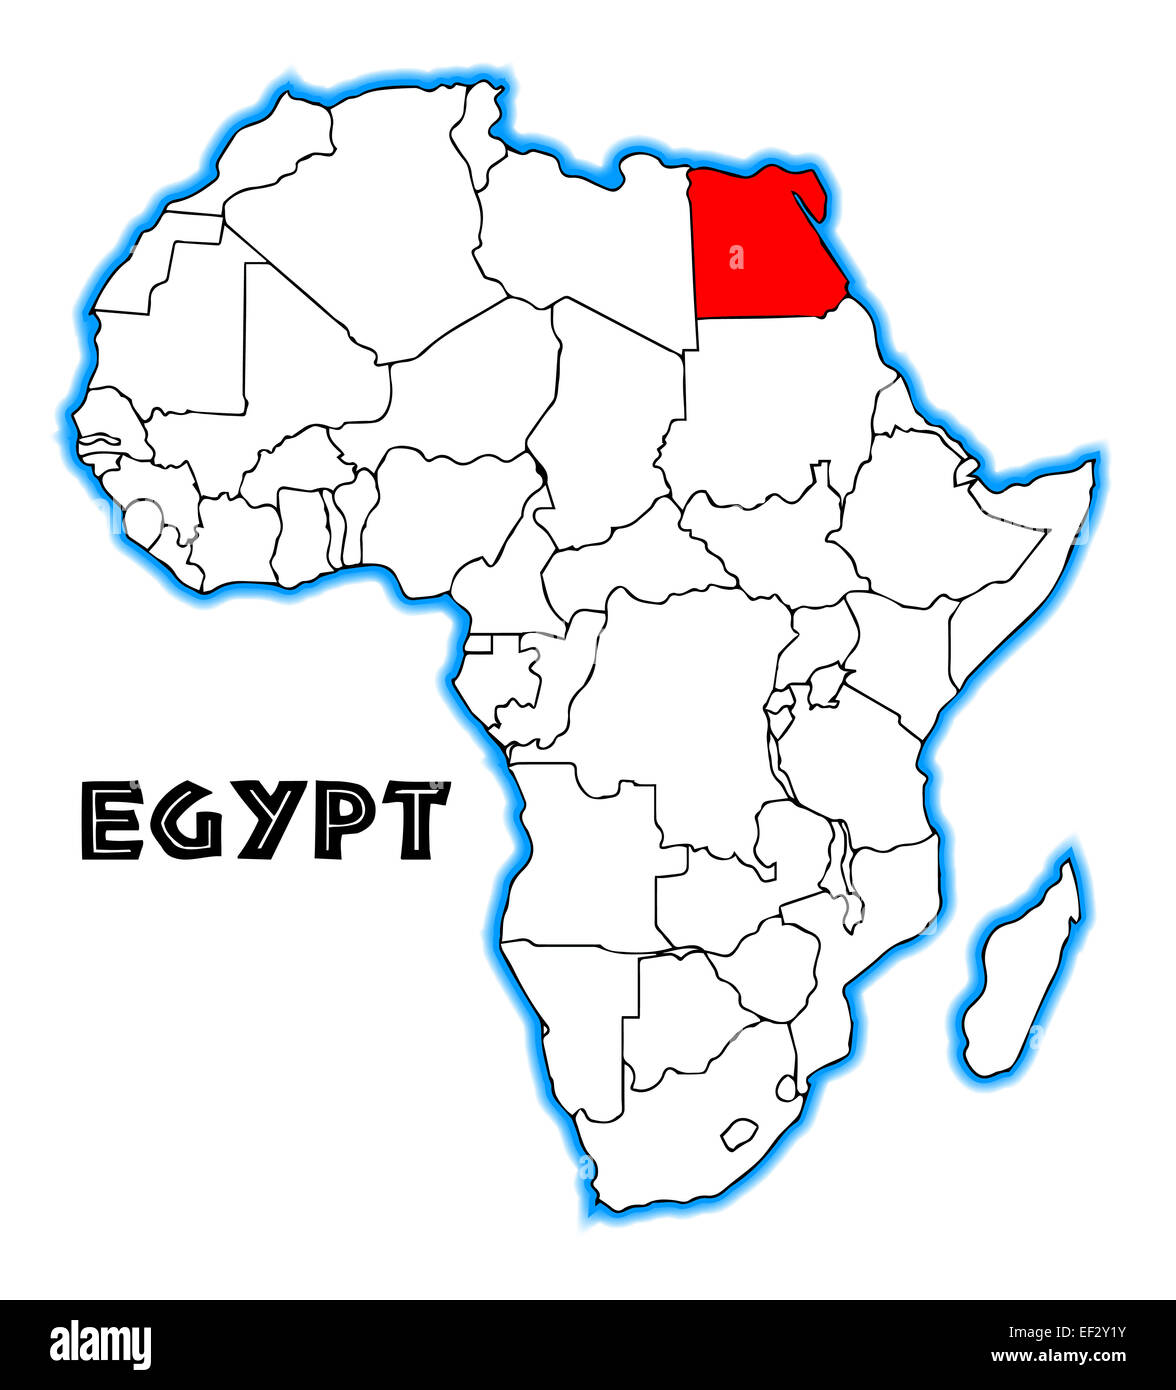 Egypt outline inset into a map of Africa over a white background